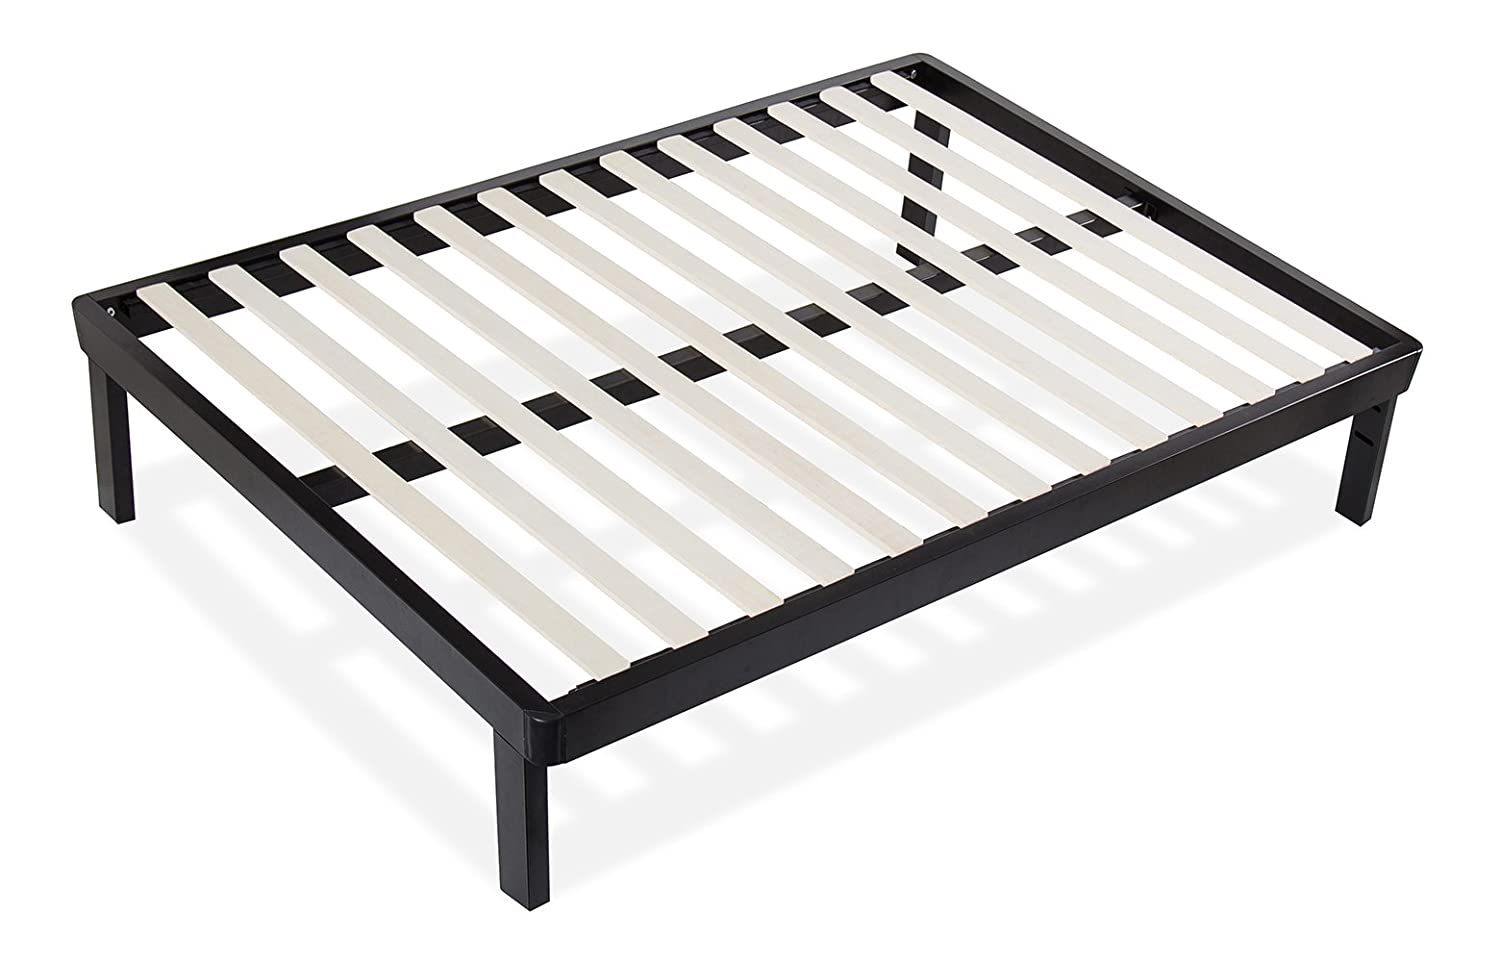 amazoncom sleeplace 14 inch dura metal wood slate bed frame 14bf03 twin kitchen dining - Slate Bed Frame